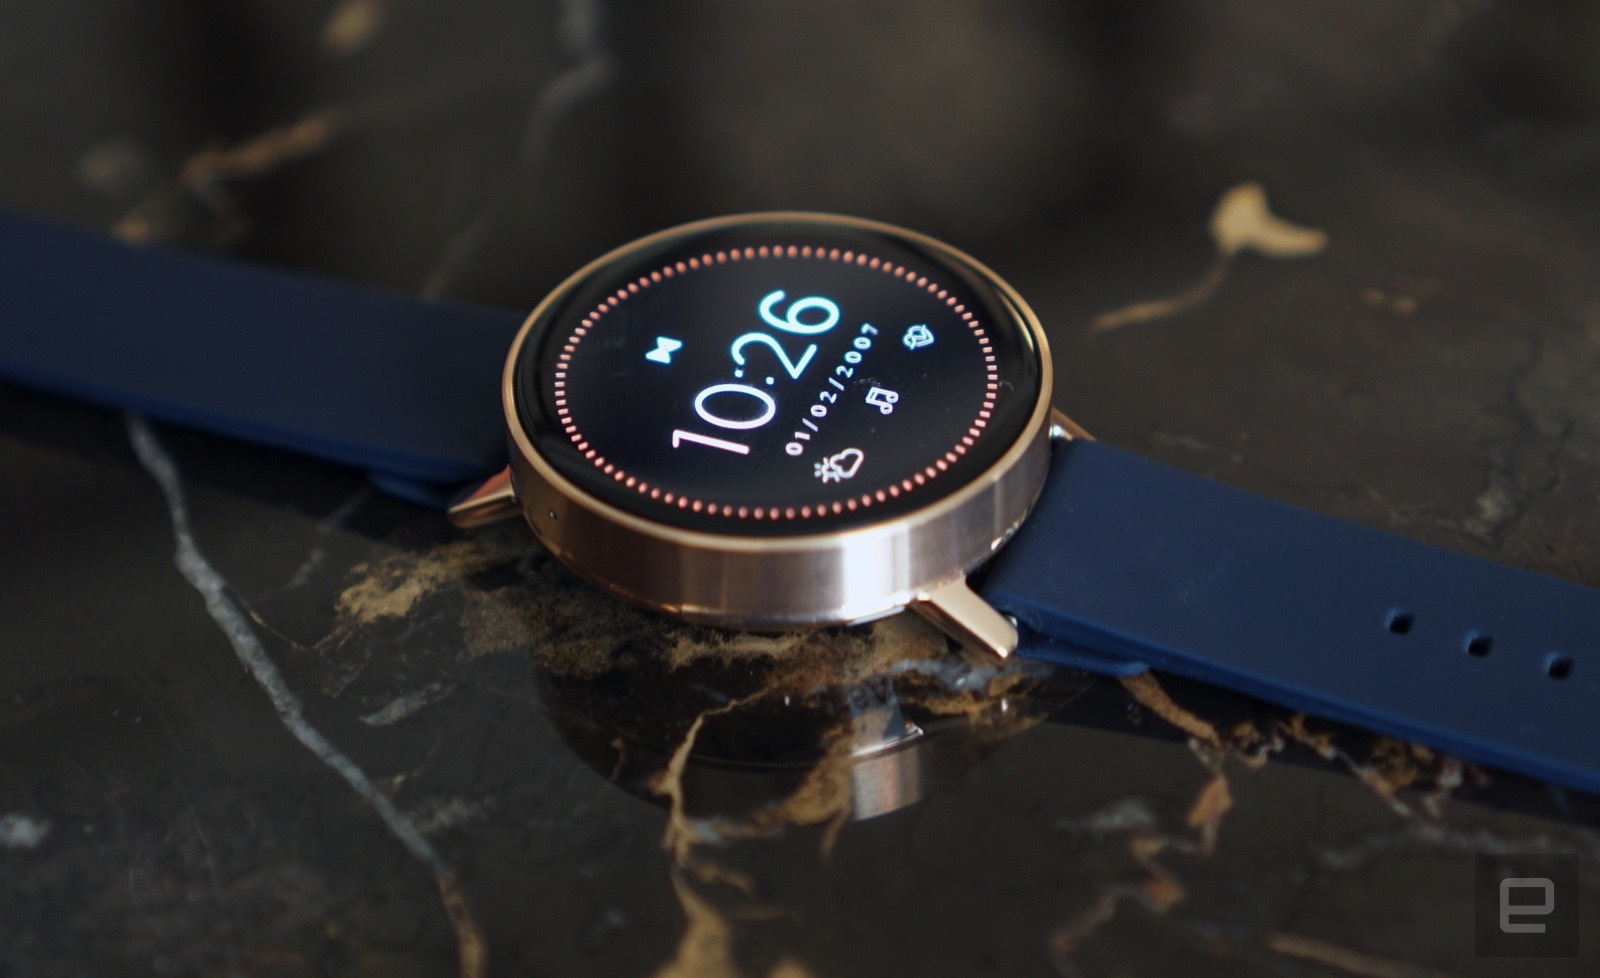 Misfit's Vapor will run Android Wear instead of its own OS